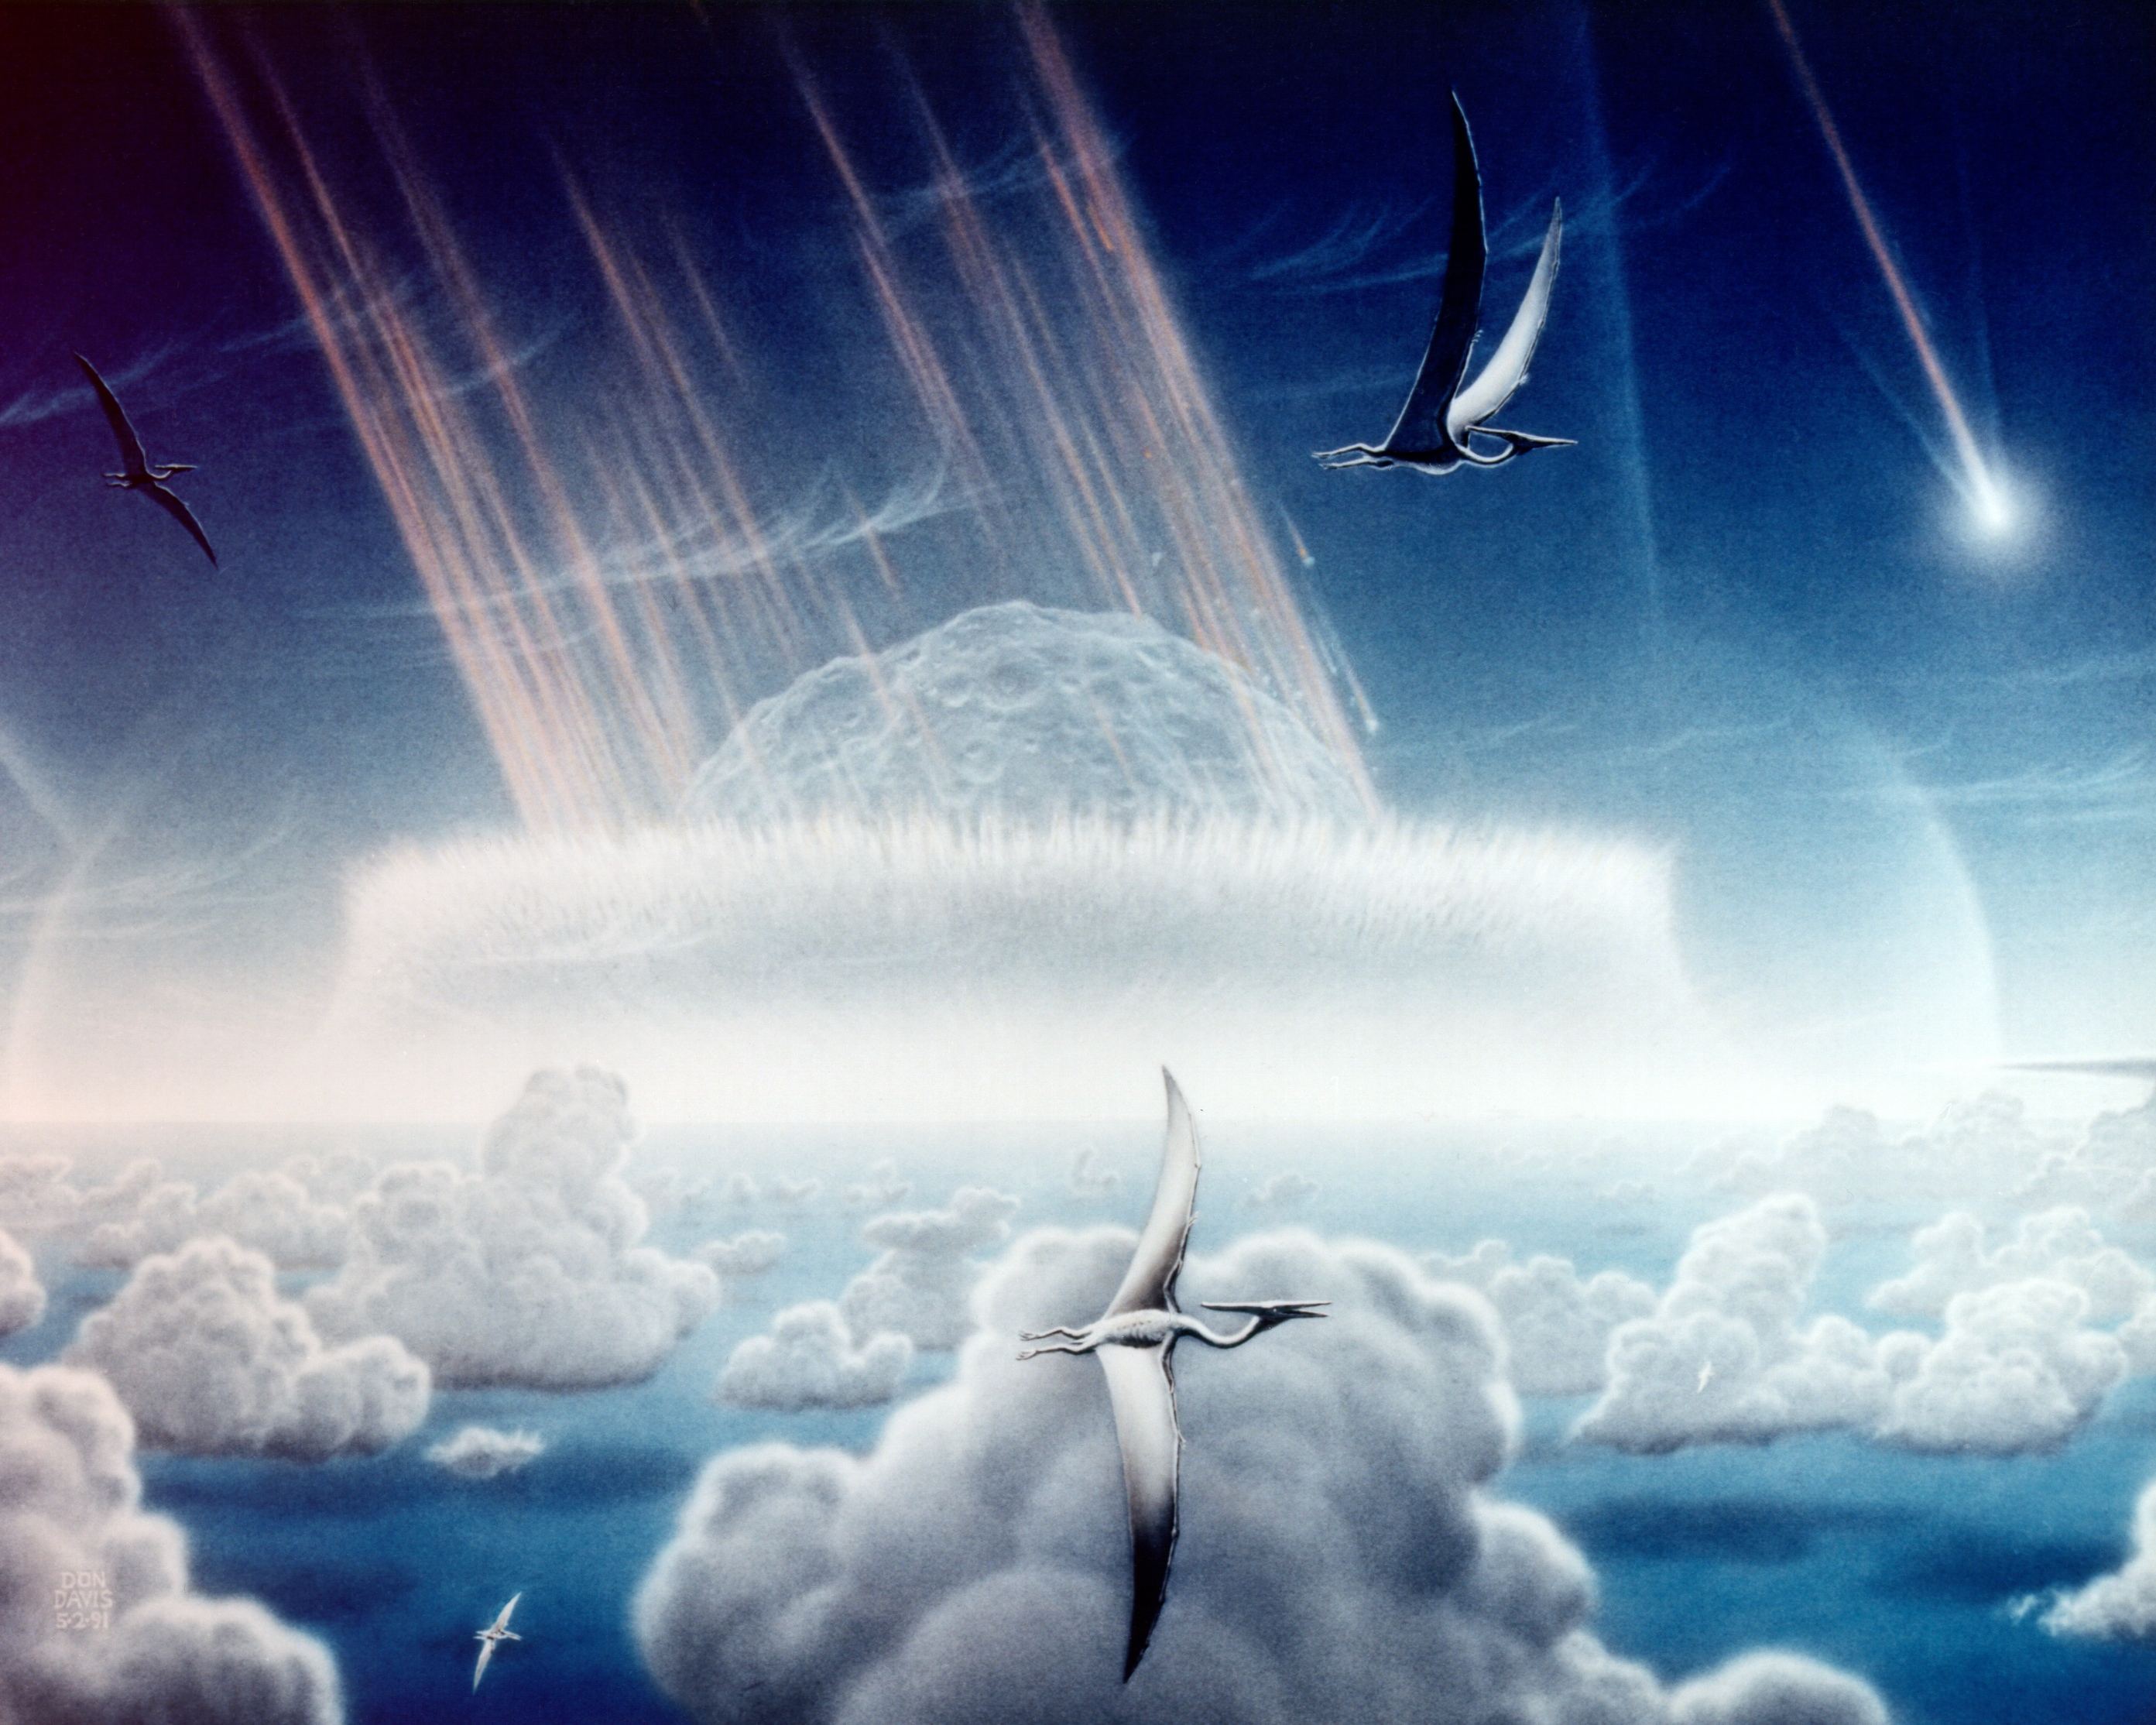 Artist's impression of asteroid slamming into tropical seas near Yucatan.